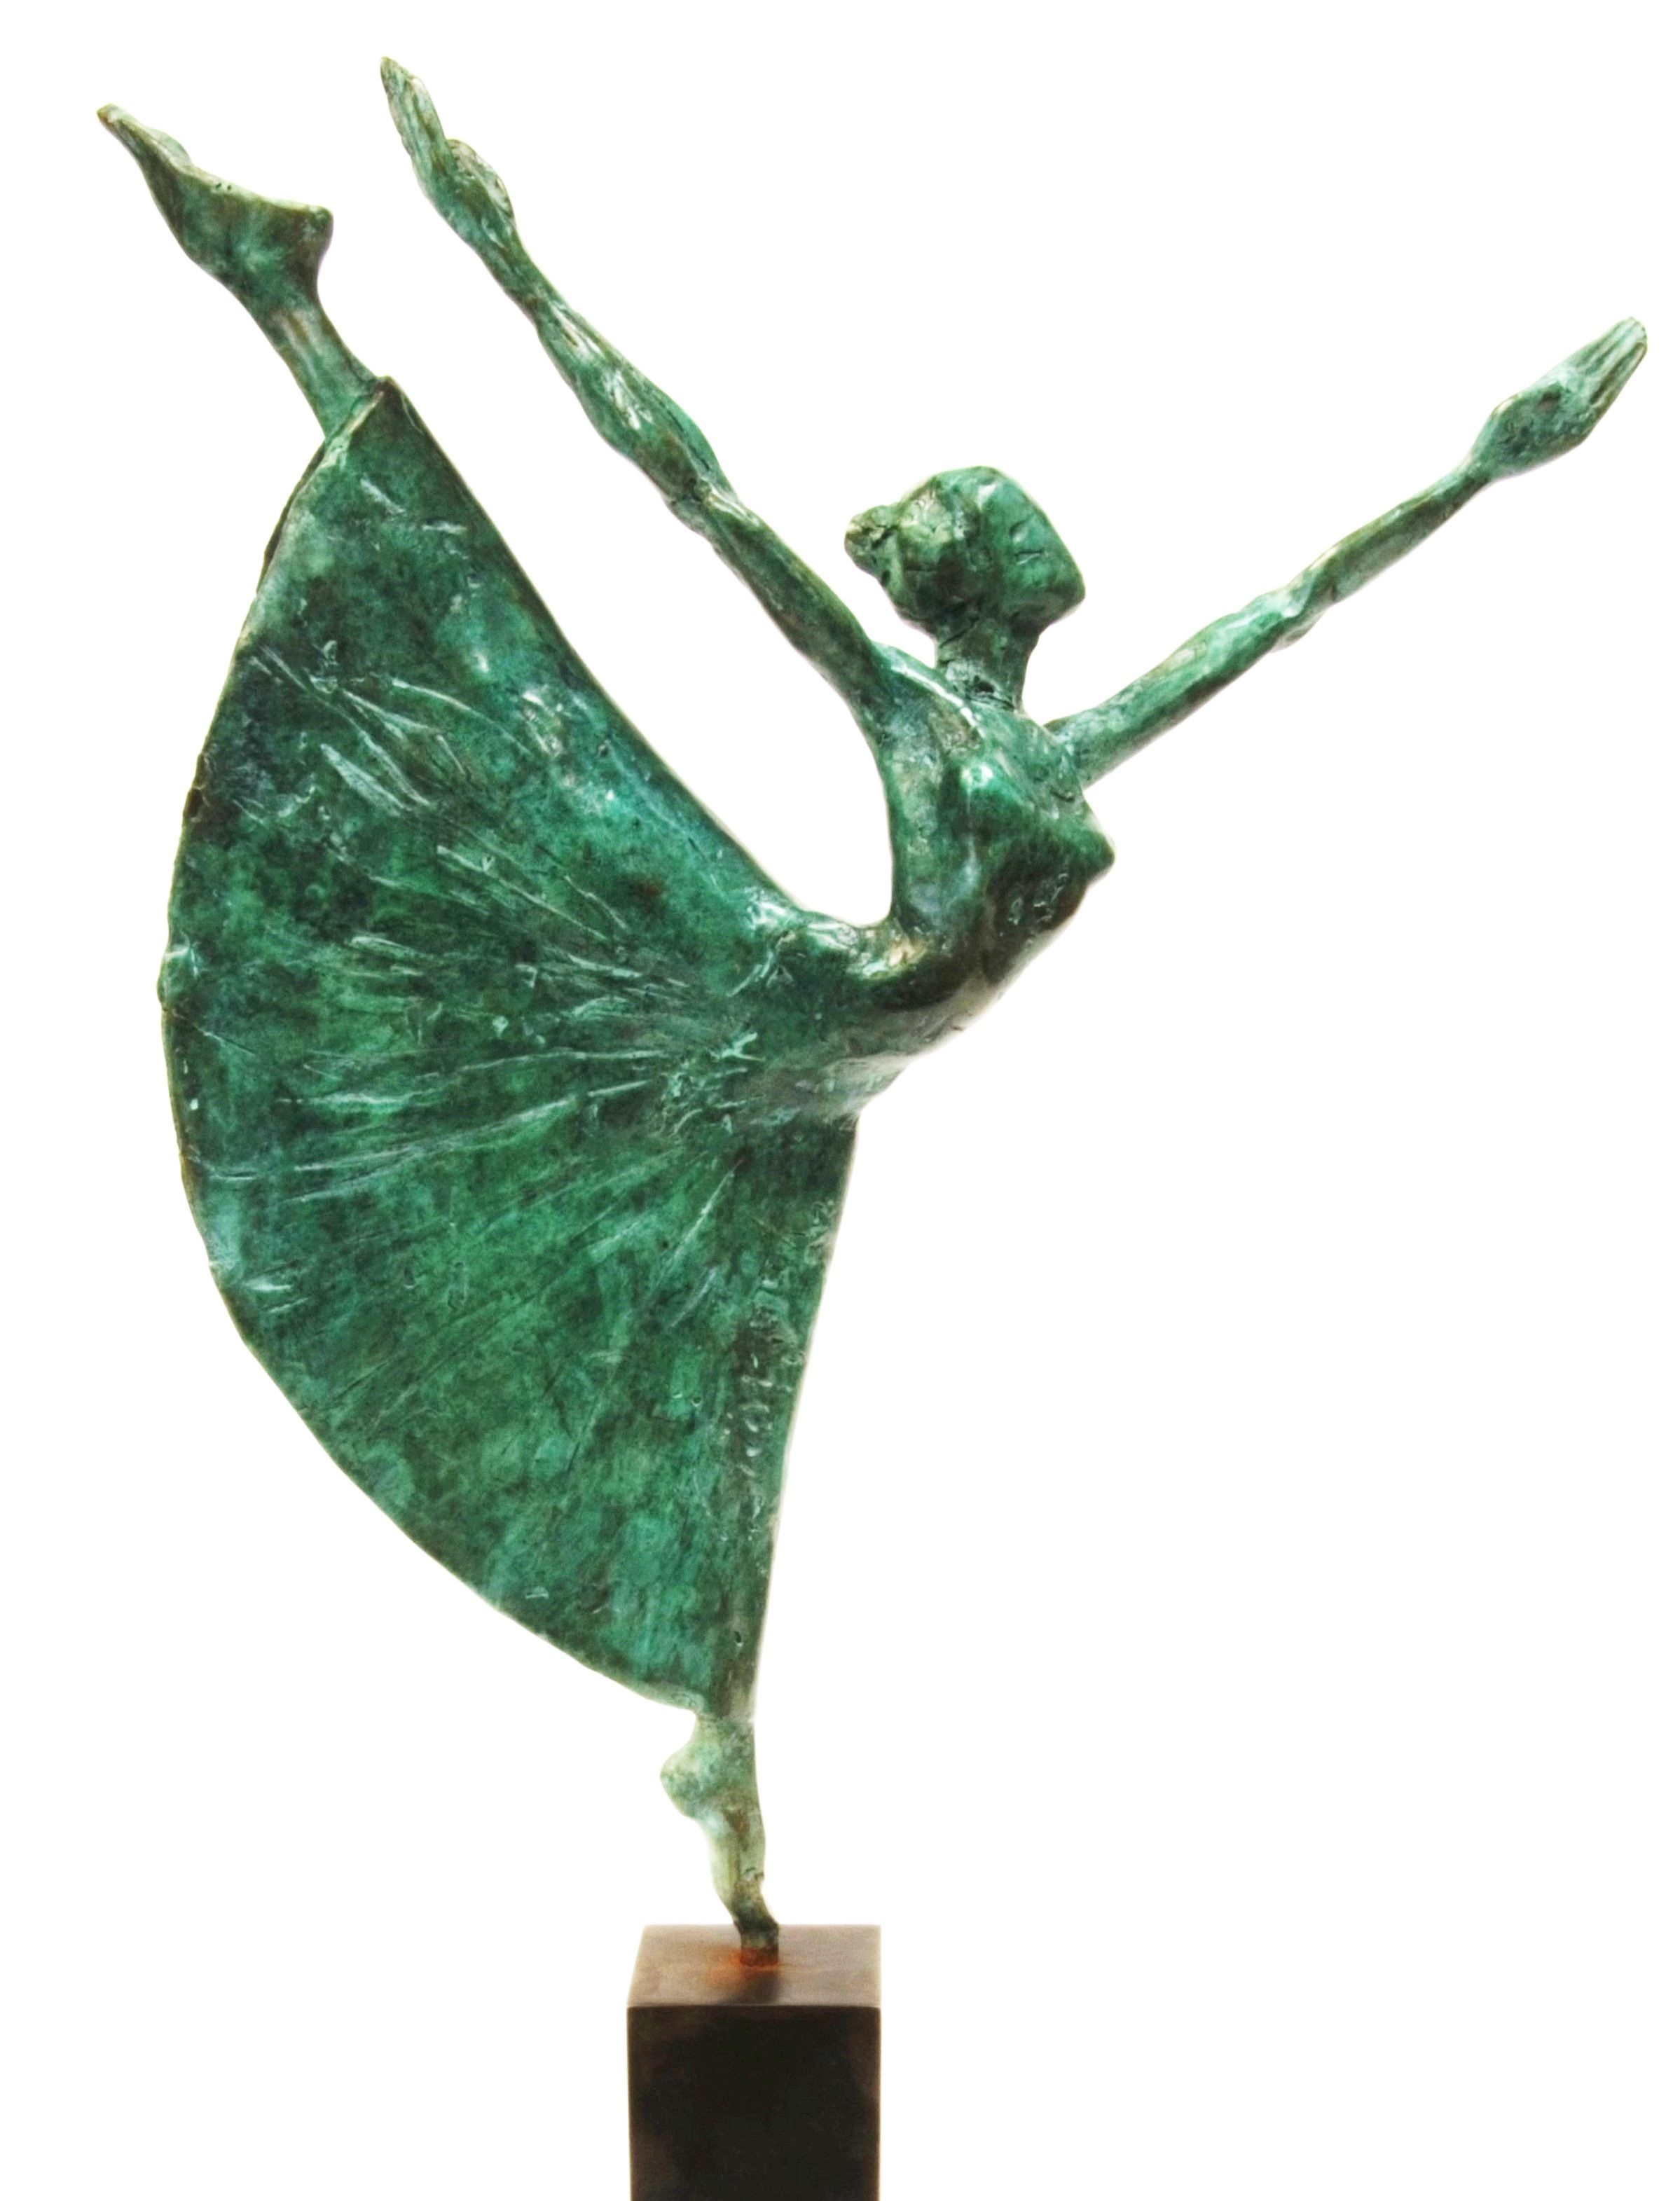 Danseuse au long tutu,Yann Guillon,Sculpture, detail 1